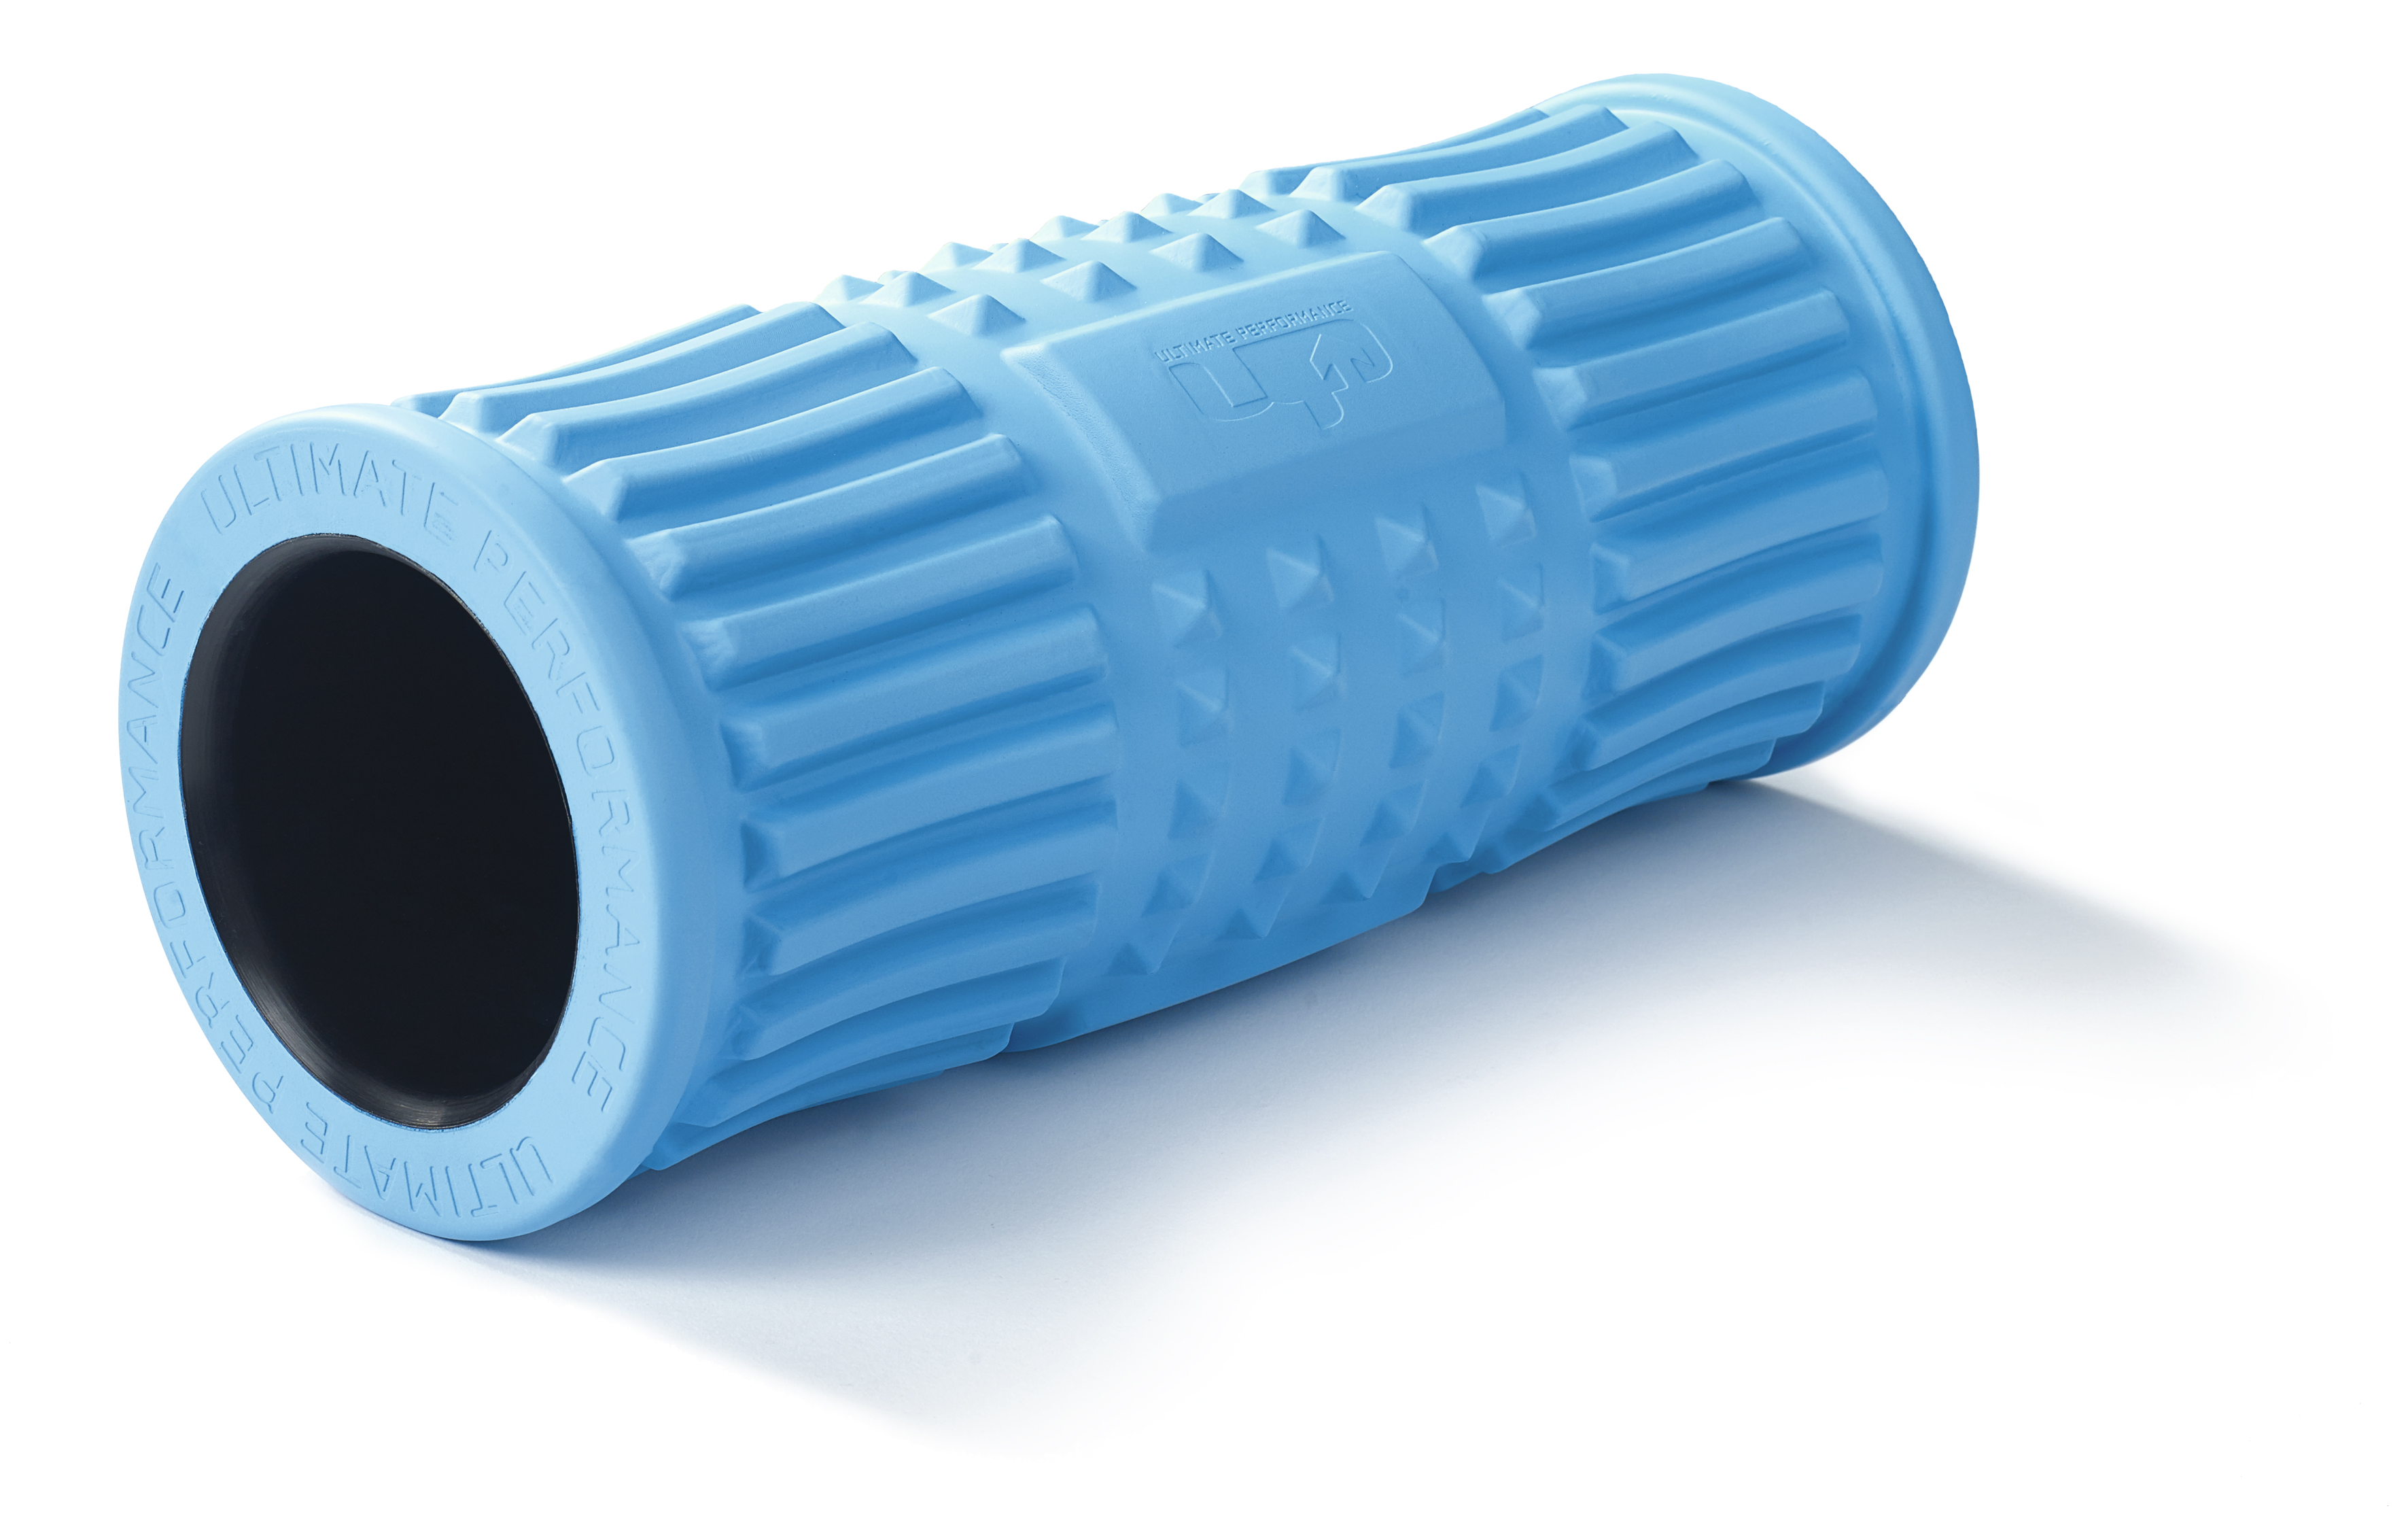 Ultimate Performance Massage Therapy Roller | Body maintenance